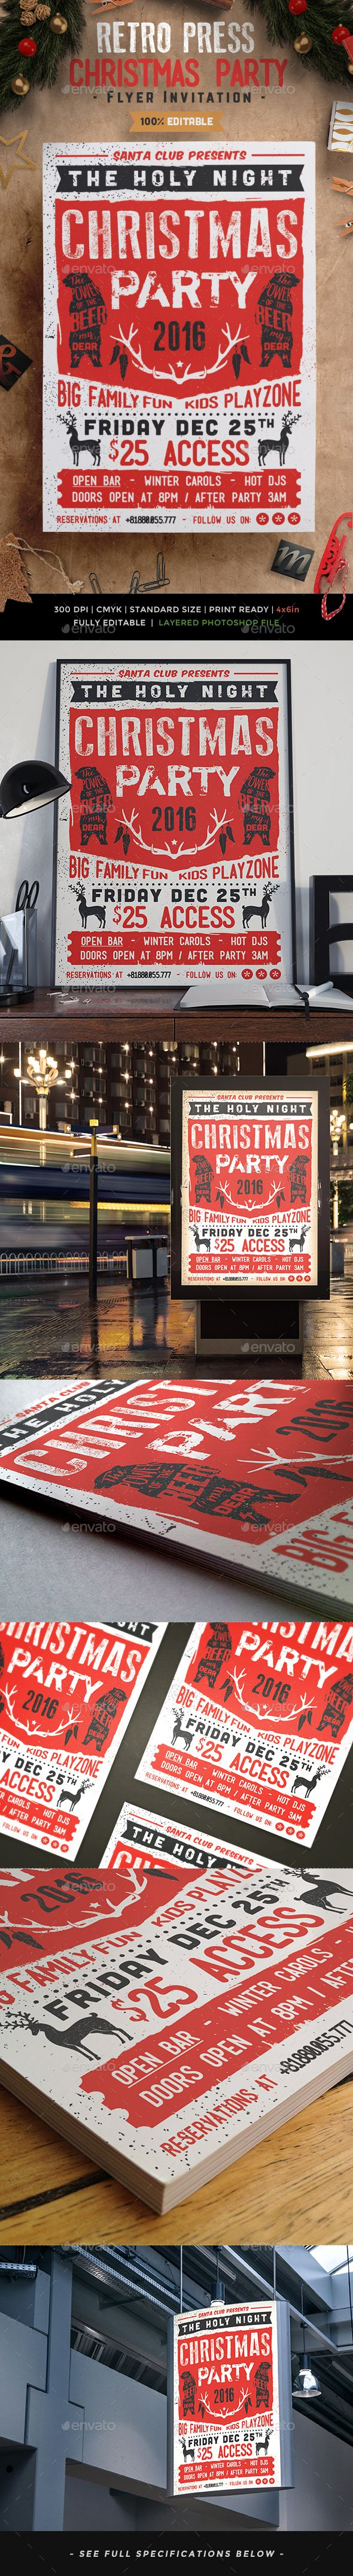 christmas party flyer template christmas parties flyer template retro press christmas flyer invitation template psd design graphicriver